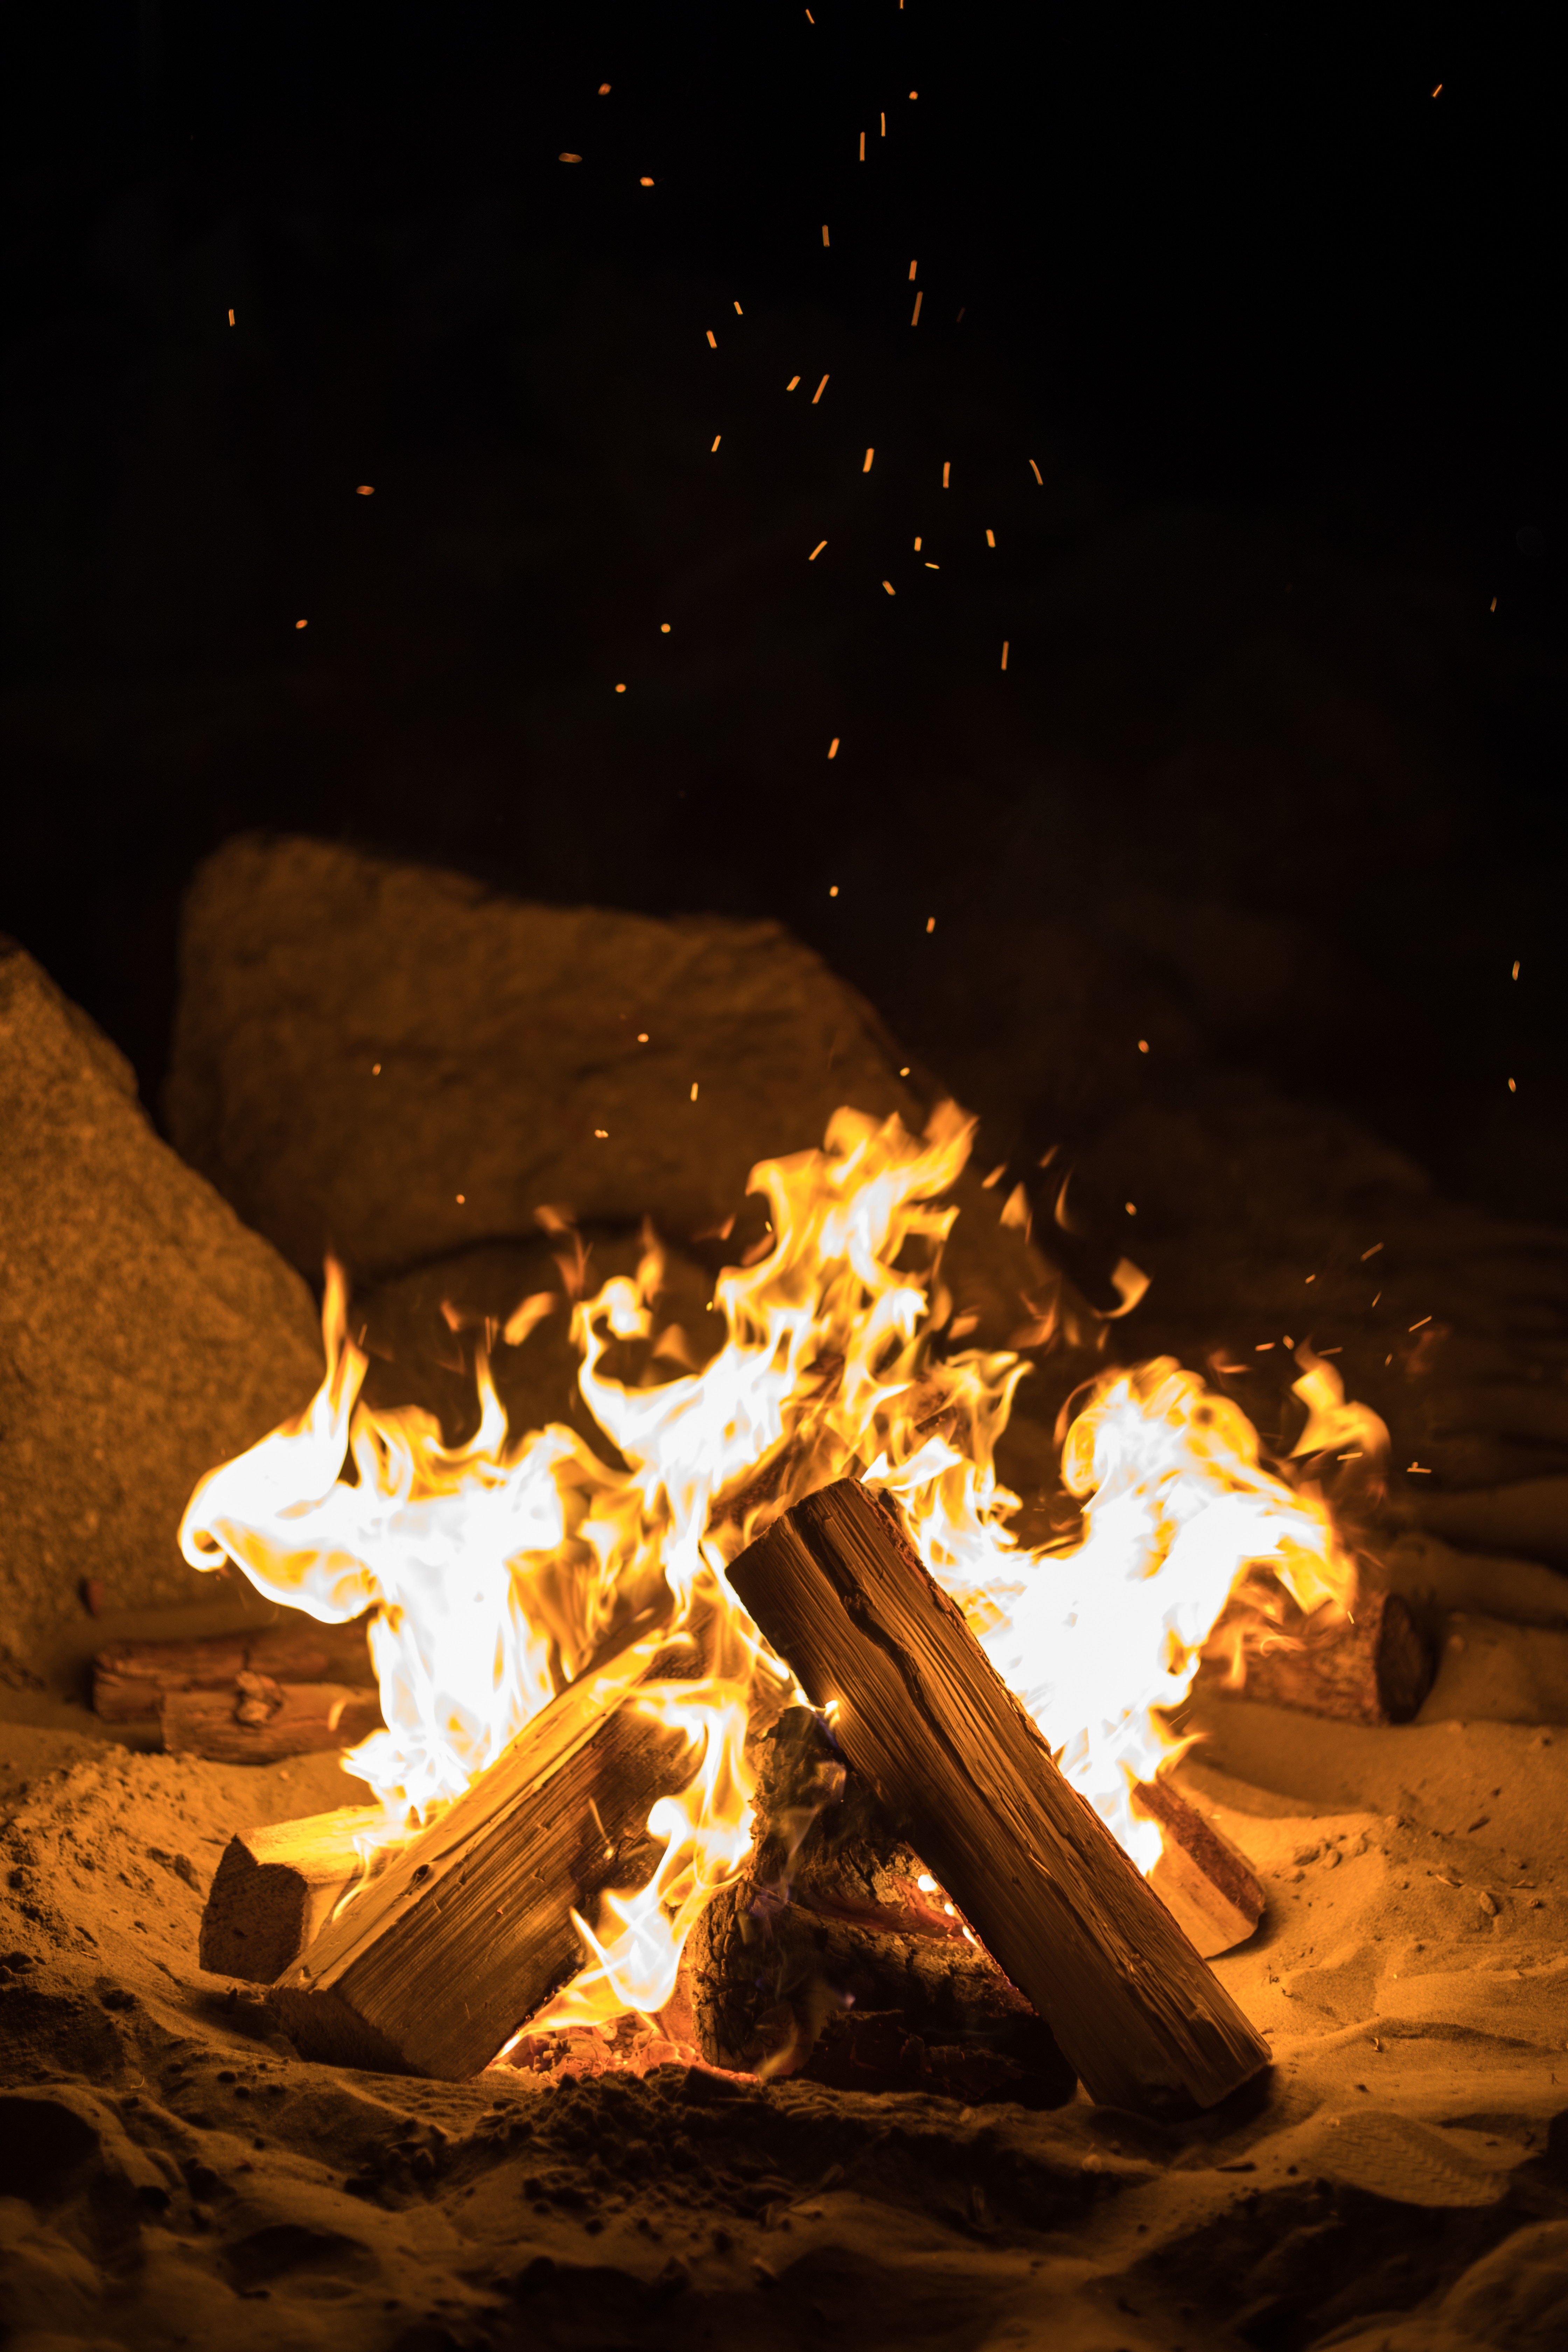 80137 Screensavers and Wallpapers Bonfire for phone. Download Fire, Bonfire, Night, Dark, Flame, Sparks, Firewood pictures for free